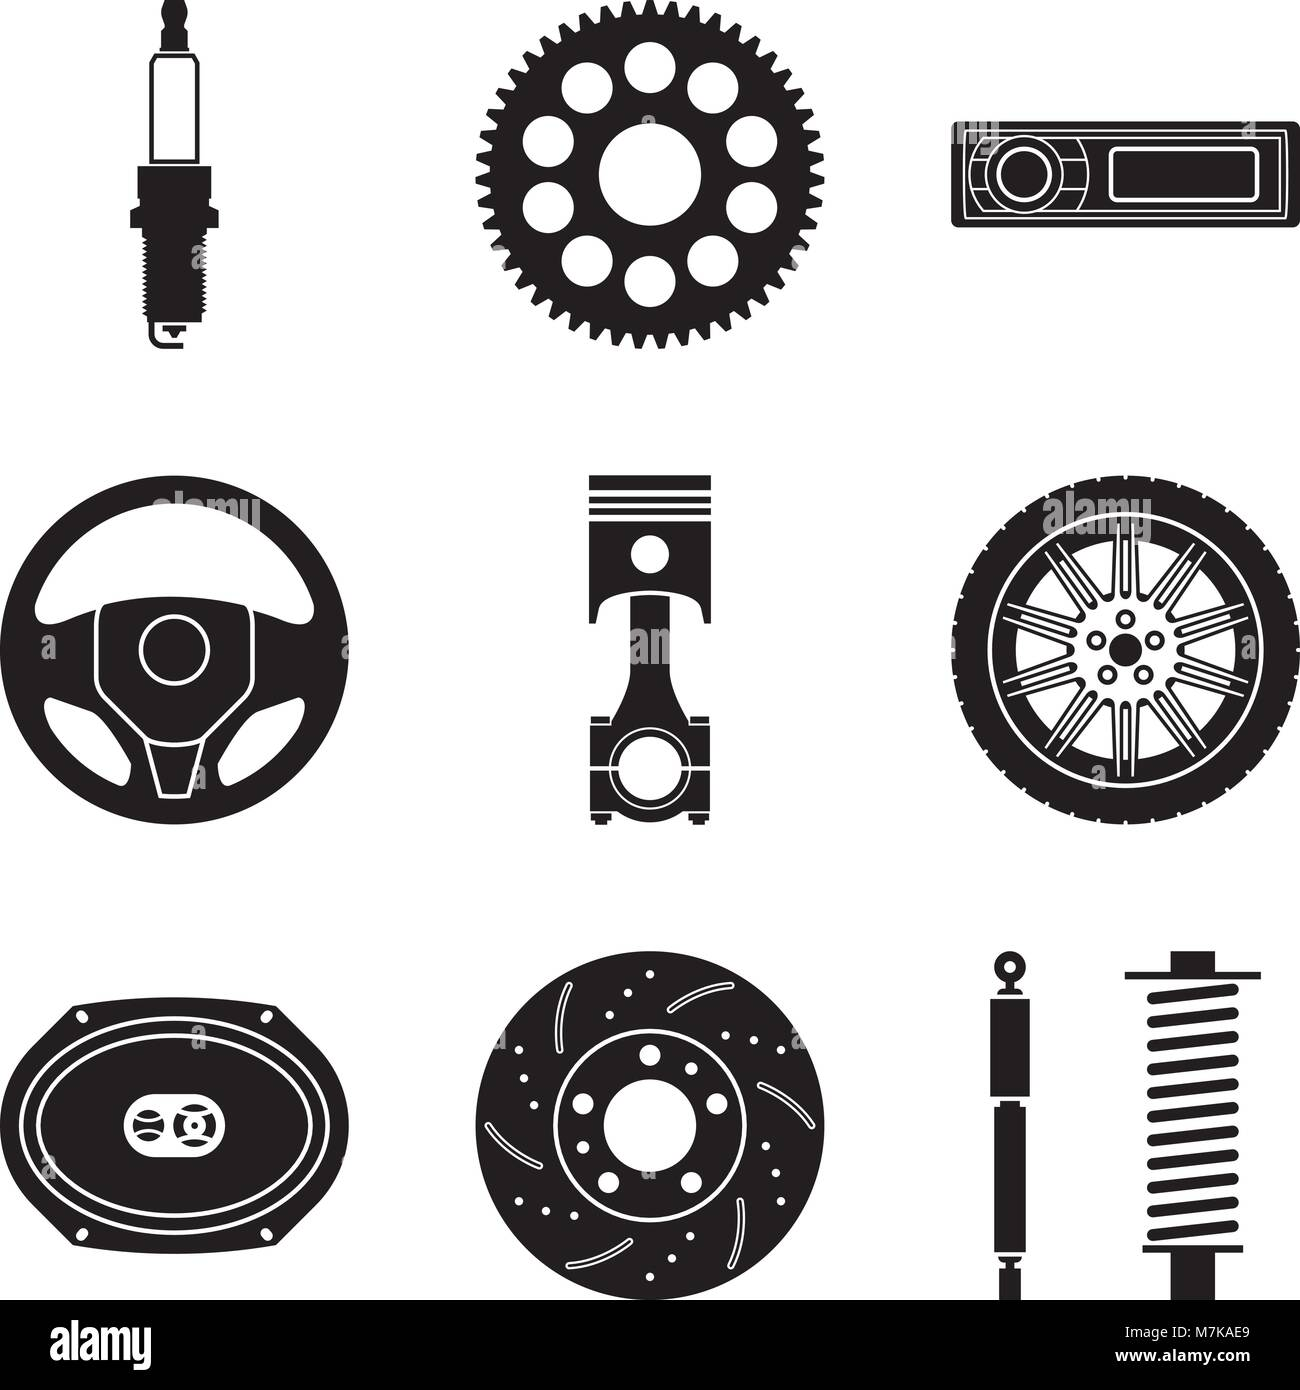 Car Parts Icon Set For Maintenance Service Vector Illustration Stock Vector Image Art Alamy